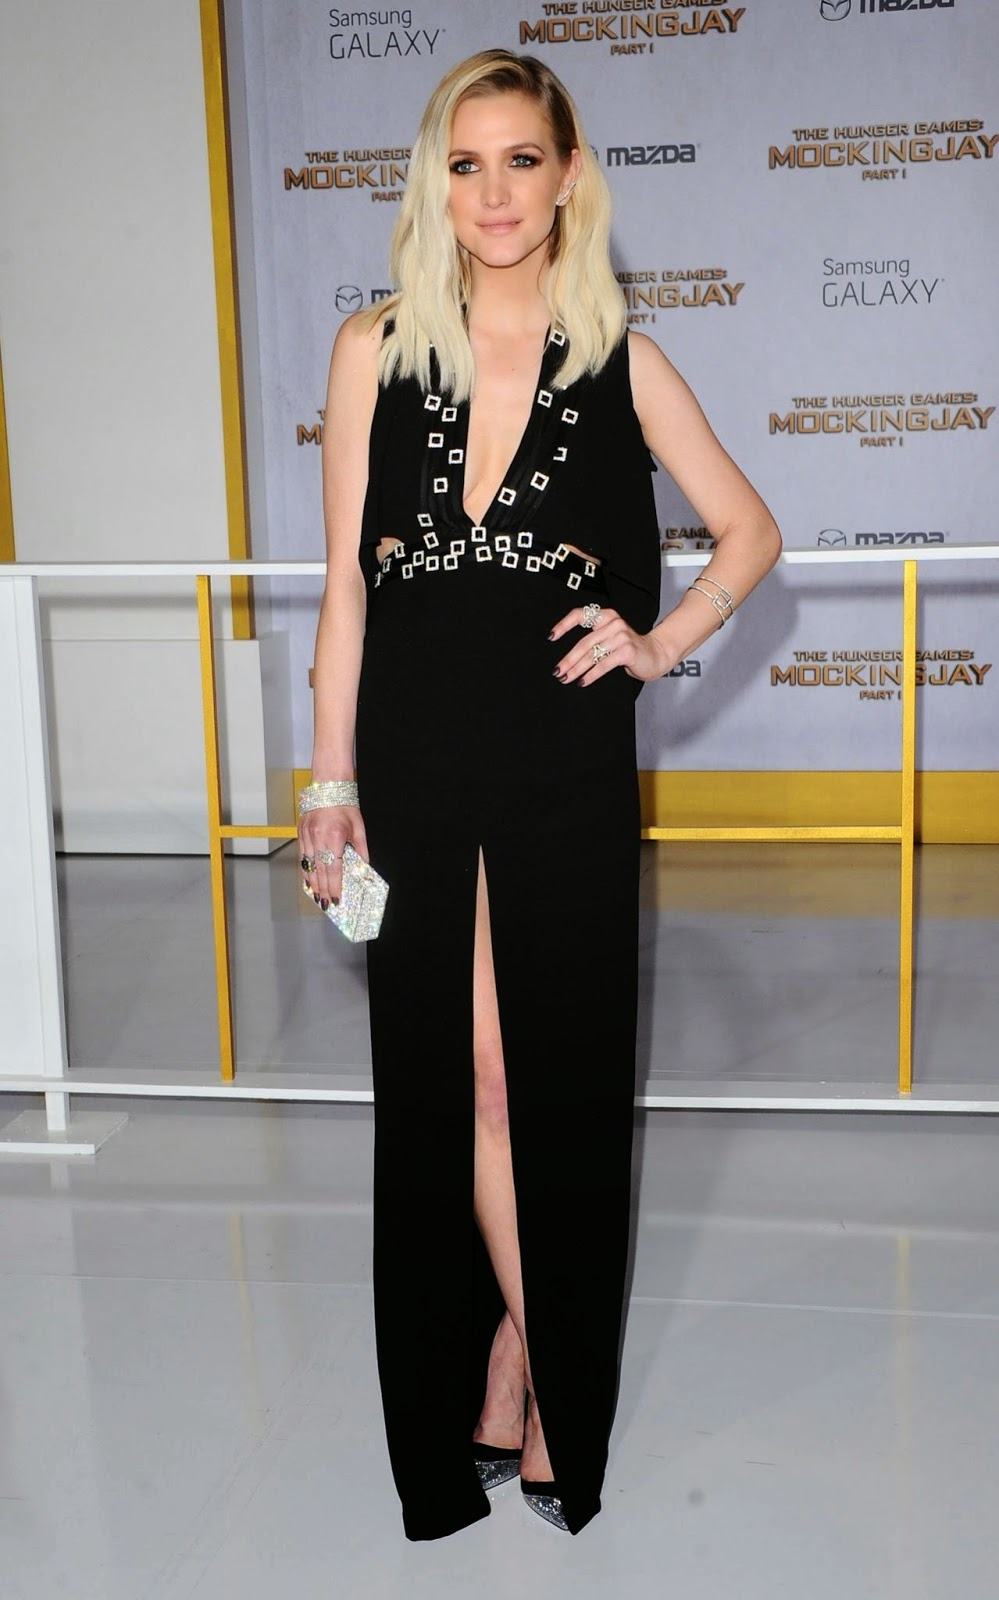 Ashlee Simpson flaunts skin in a thigh slit gown at The Hunger Games: Mockingjay Part 1 LA premiere